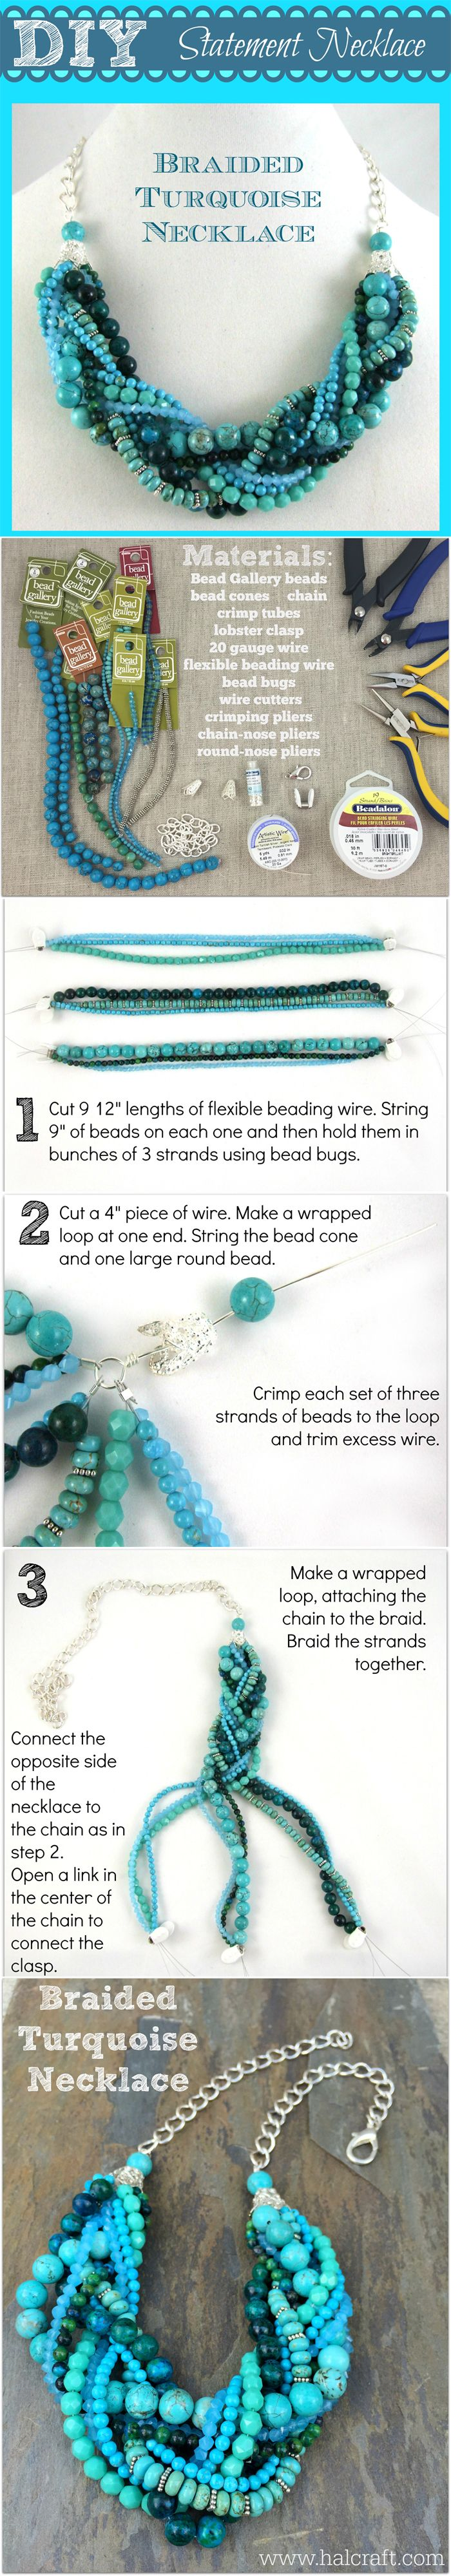 DIY Braided #Turquoise #statement #necklace tutorial. Change out the colors for your favorites, or choose these #BeadGallery beads and @beadalon beading wire available at @michaelsstores